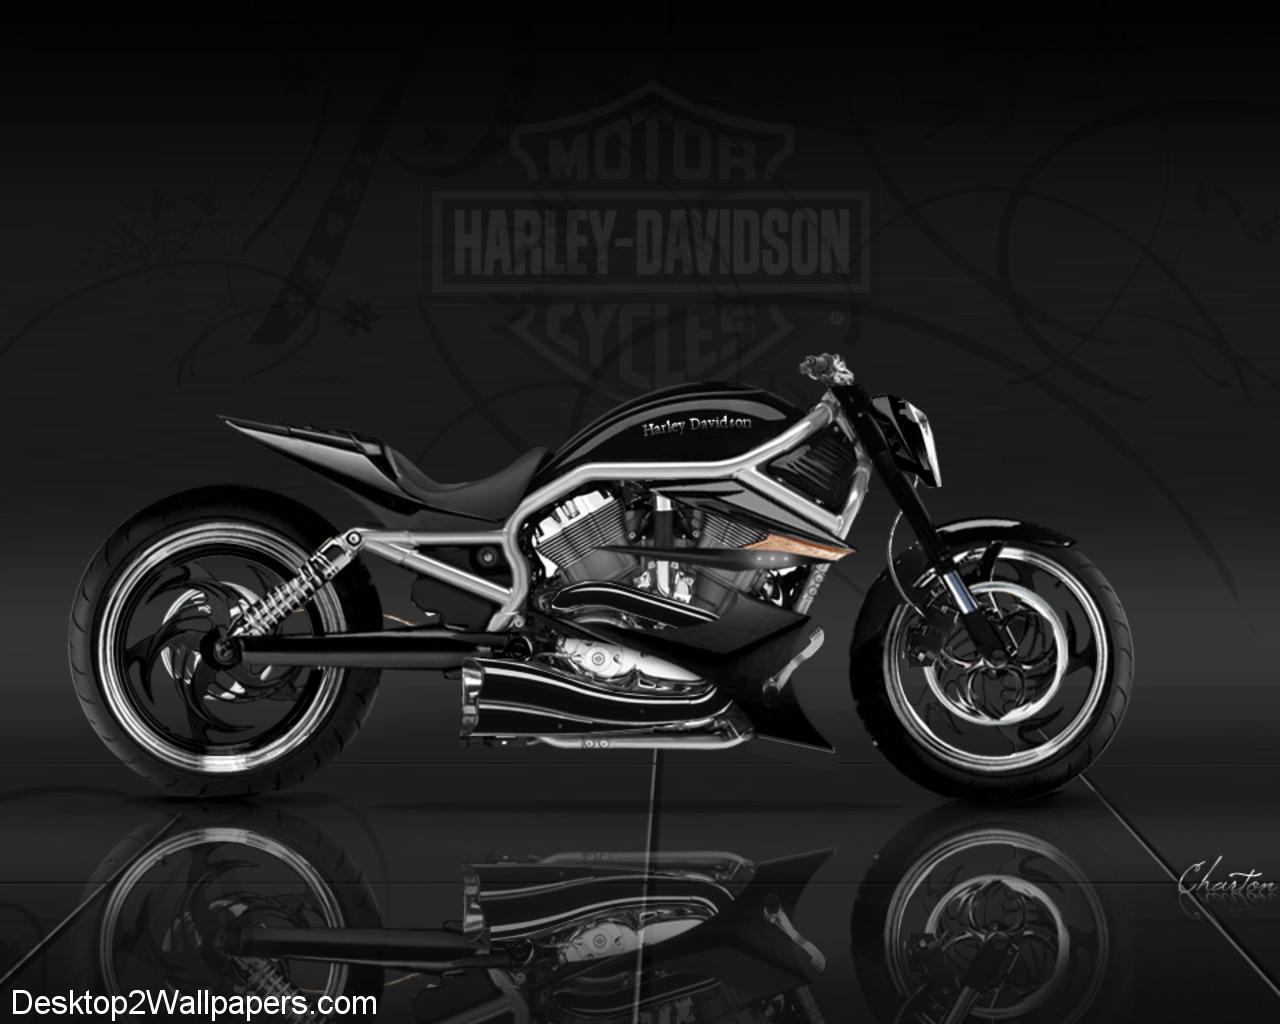 Harley Davidson Black Wallpapers Top Free Harley Davidson Black Backgrounds Wallpaperaccess